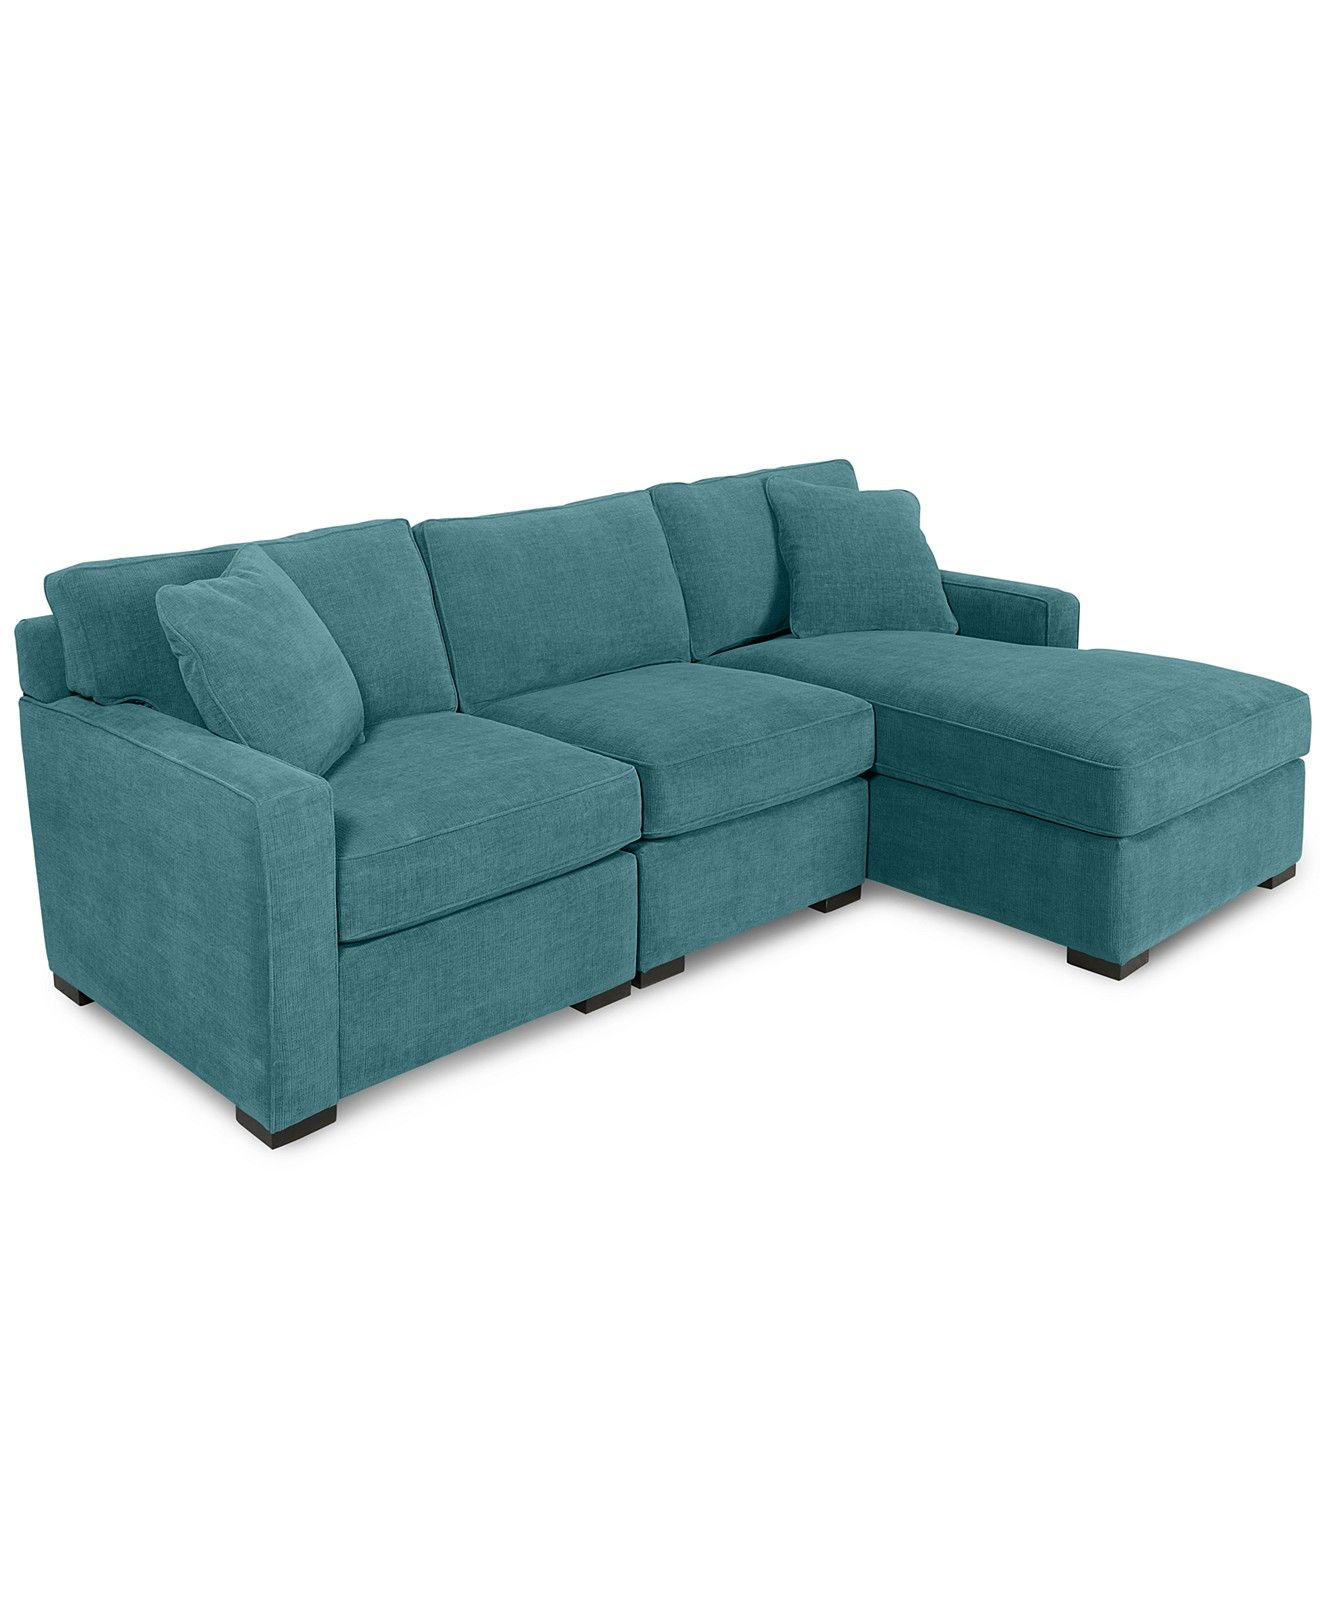 Radley 3-Piece Fabric Chaise Sectional Sofa